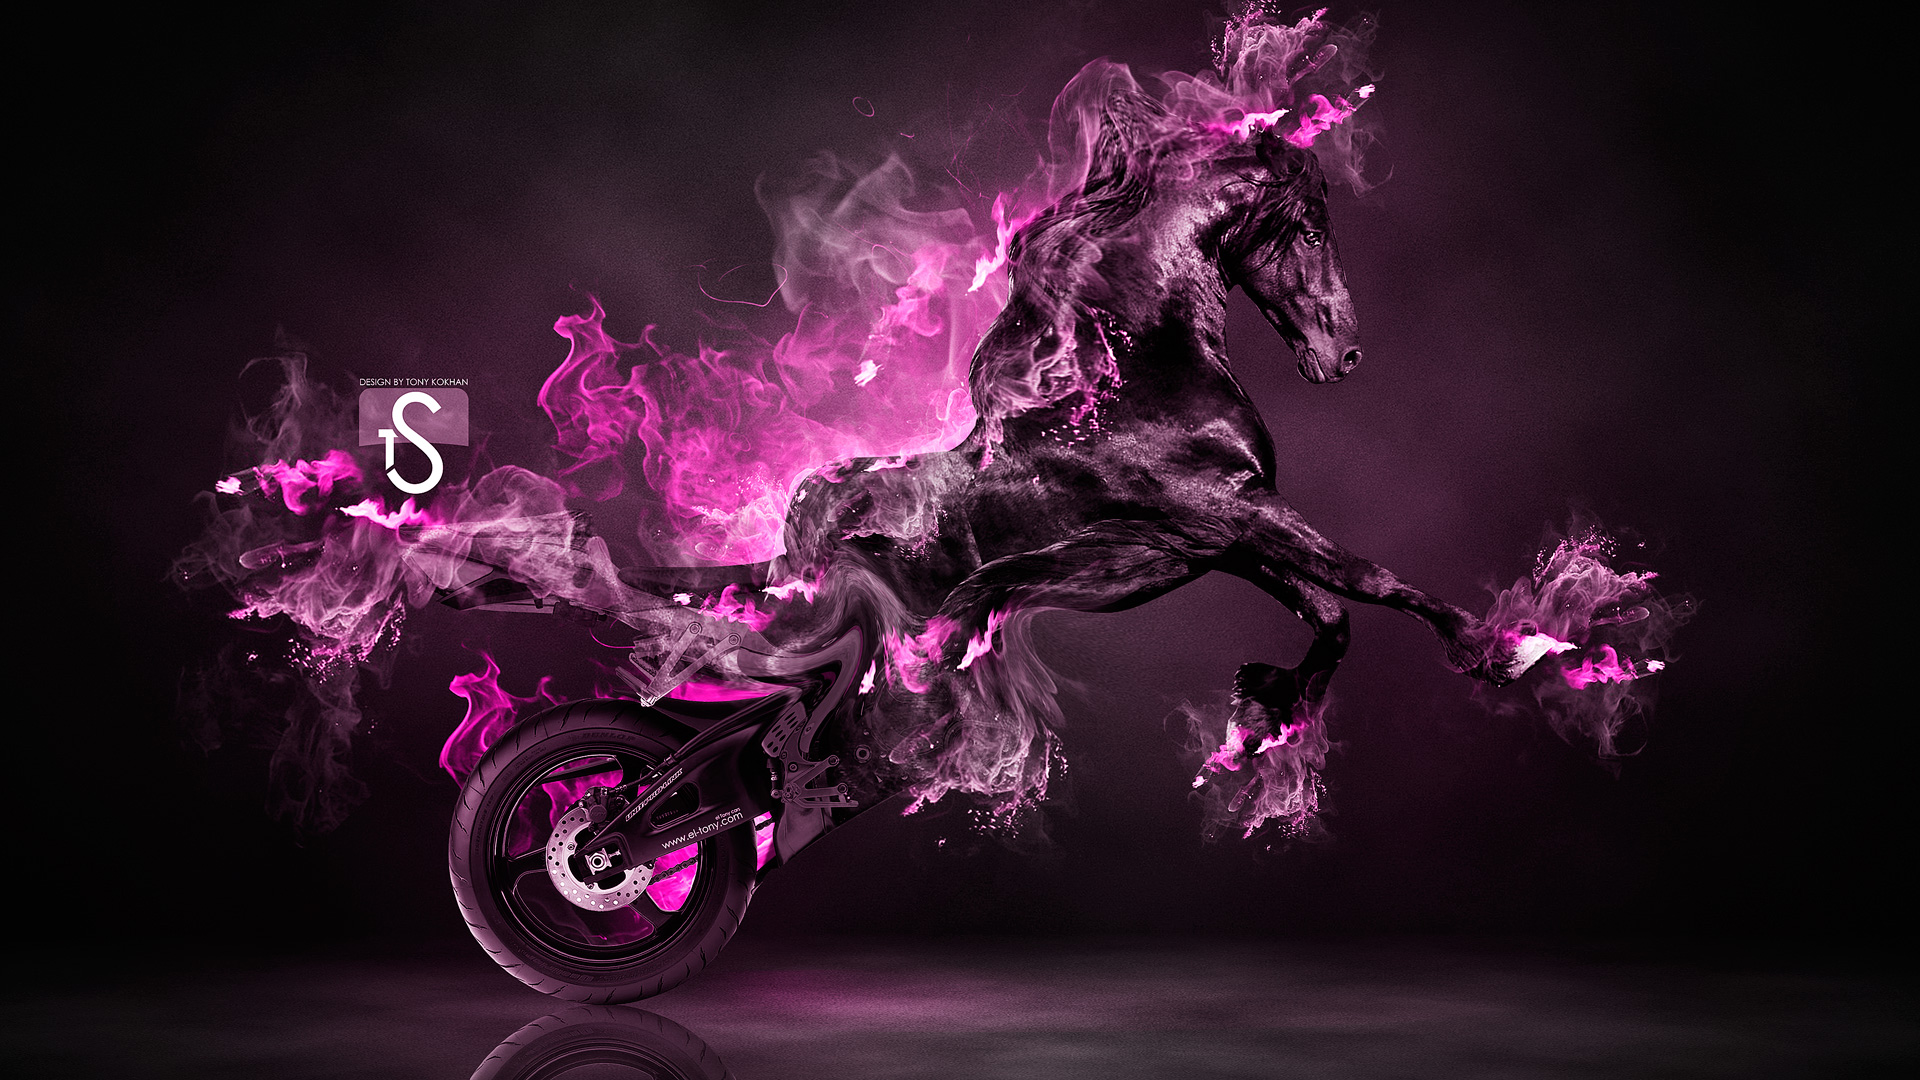 Pink HD Wallpaper - Wallpaper, High Definition, High Quality ...